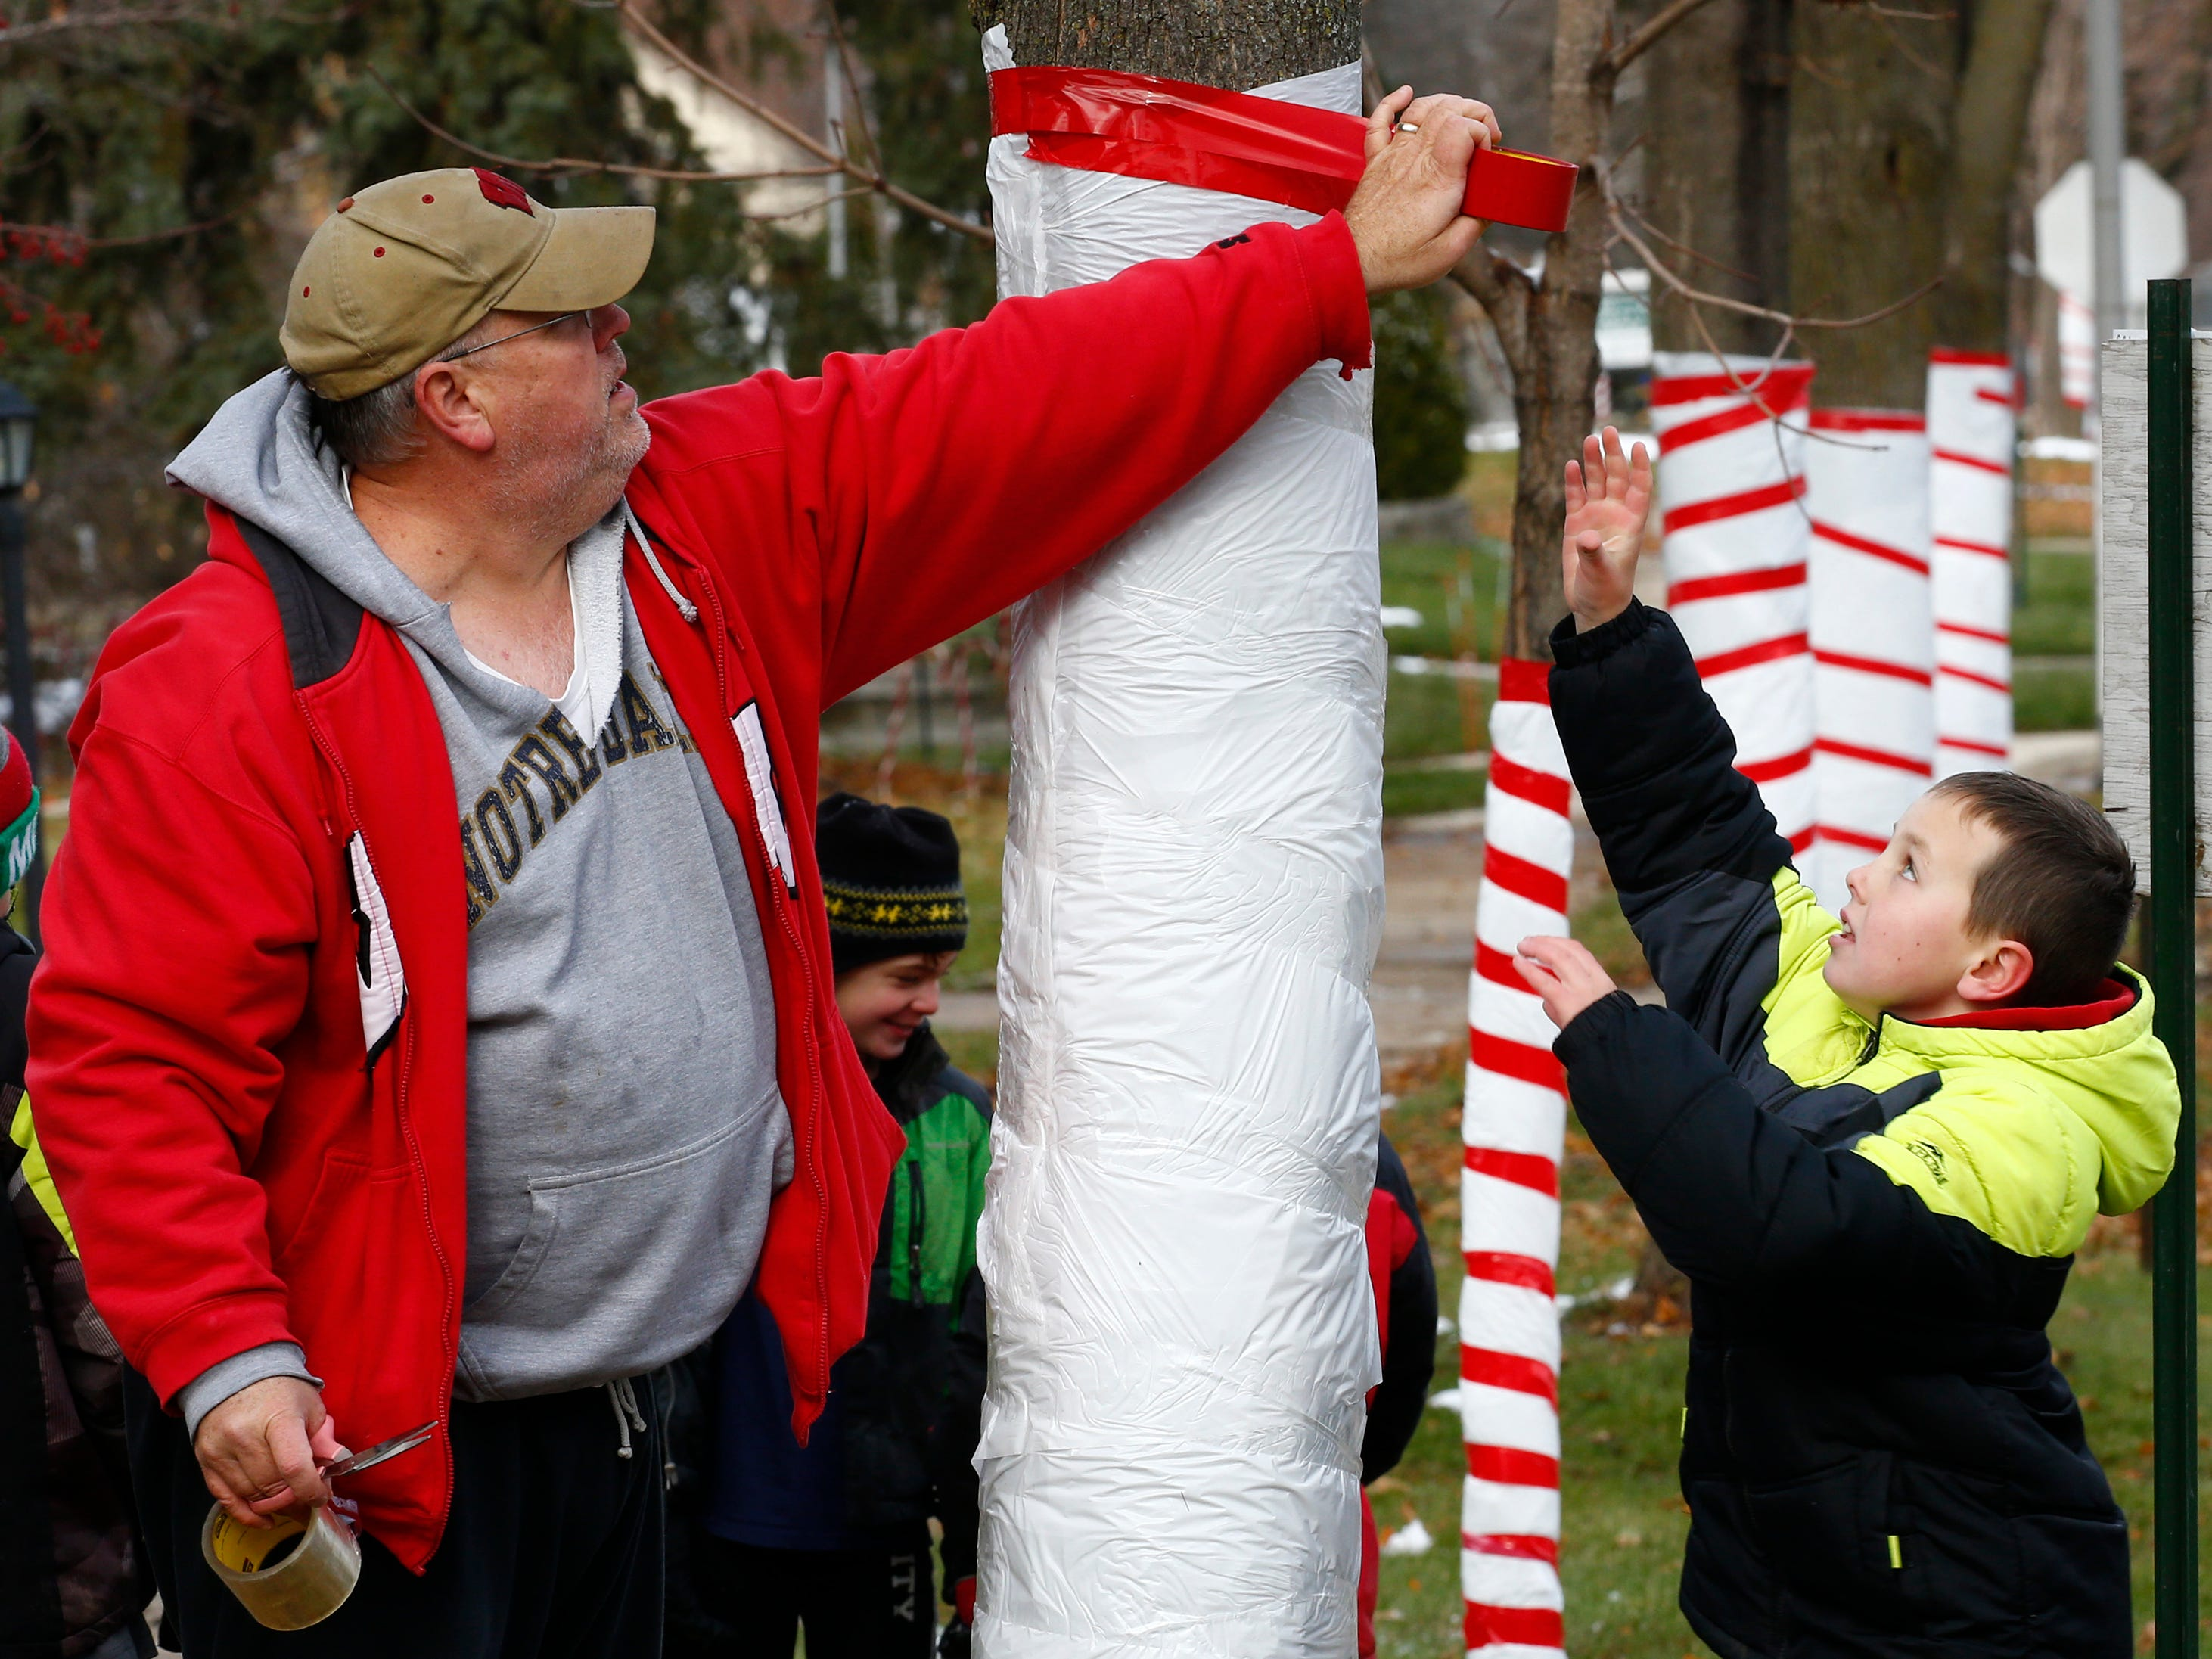 Gregory Ryan stretches to grasp a roll of striping tape to complete another tree in West Allis' Candy Cane Lane. Volunteers from the Midwest Athletes Against Childhood Cancer (MACC) Fund decorated more than 150 trees in the four-block area on Nov. 17 in preparation for Candy Cane Lane's Nov. 23 to Dec. 26 season.